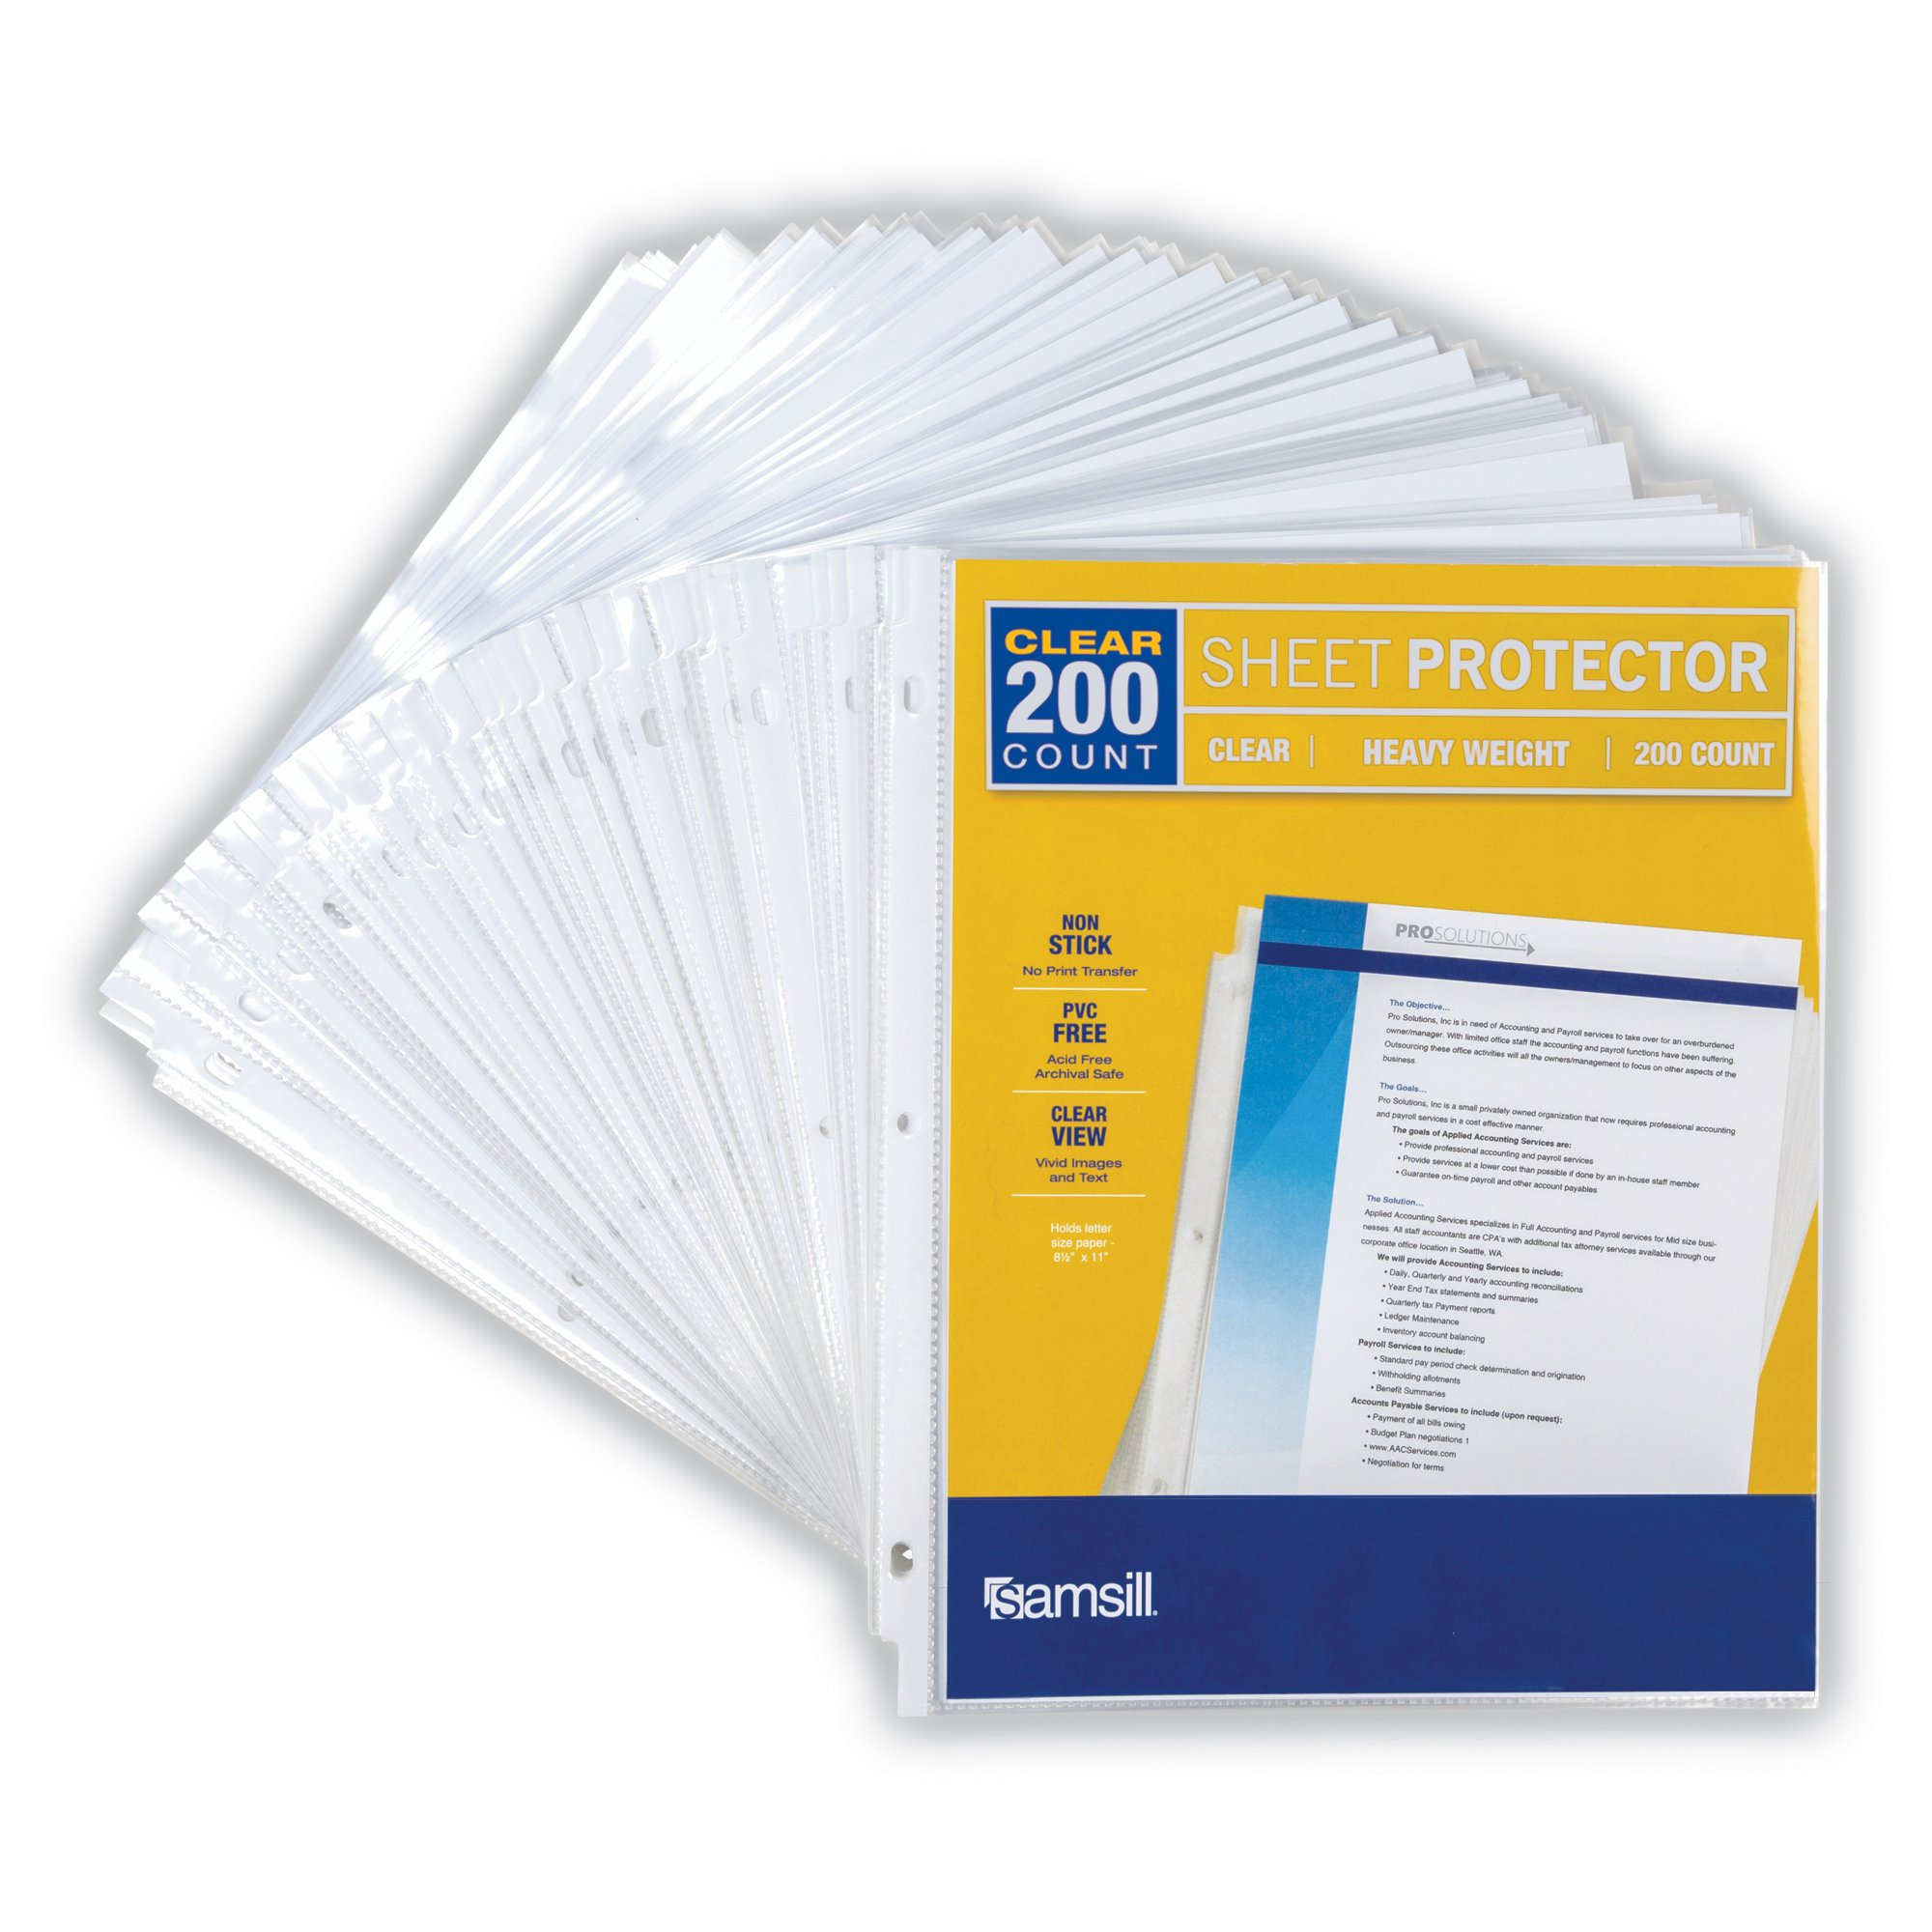 Samsill Heavyweight Clear Sheet Protectors, Box of 200 Plastic Page Protectors, Acid Free/Archival Safe, Top Load 8.5 x 11 inches by Samsill (Image #2)